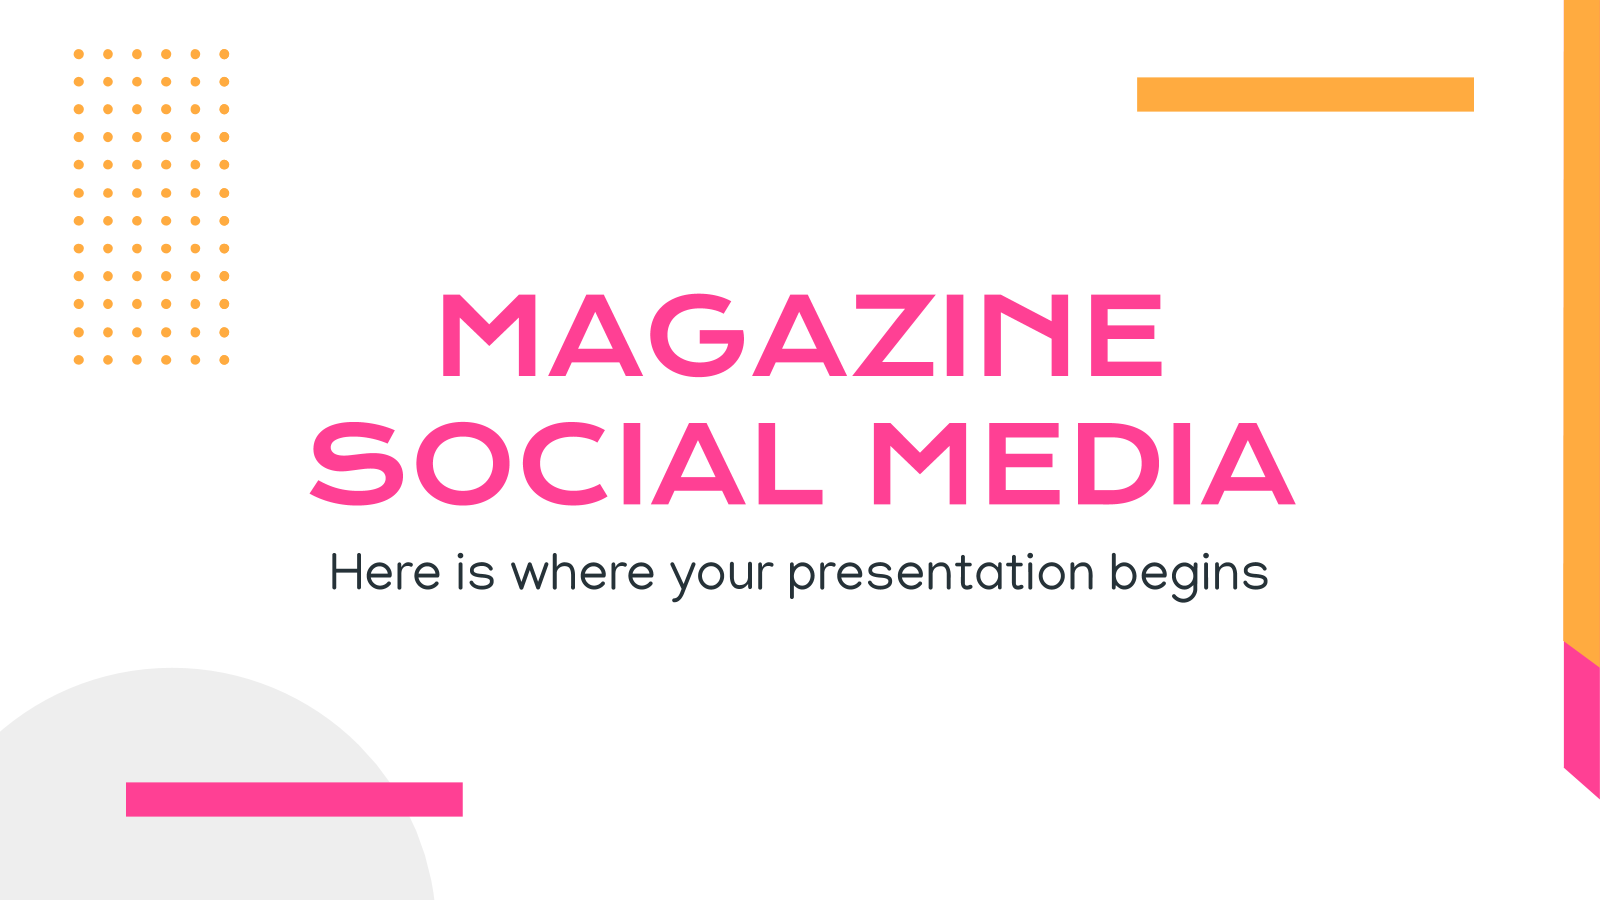 Magazine Social Media presentation template